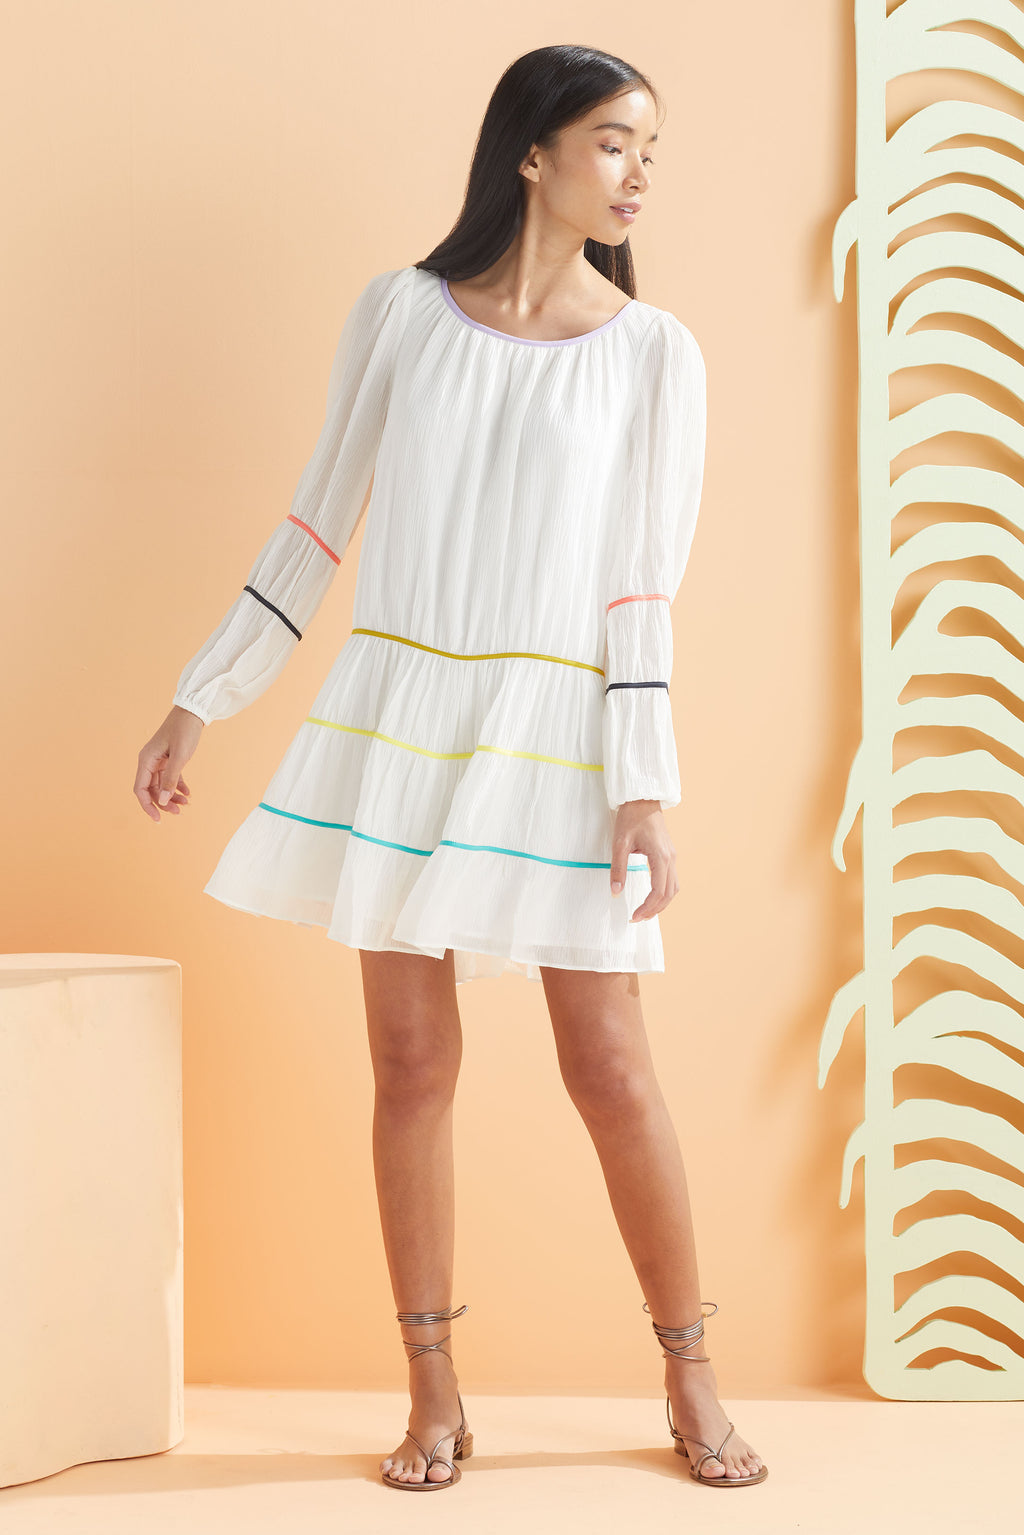 White long sleeve dress with colorful details  and an optional belt.